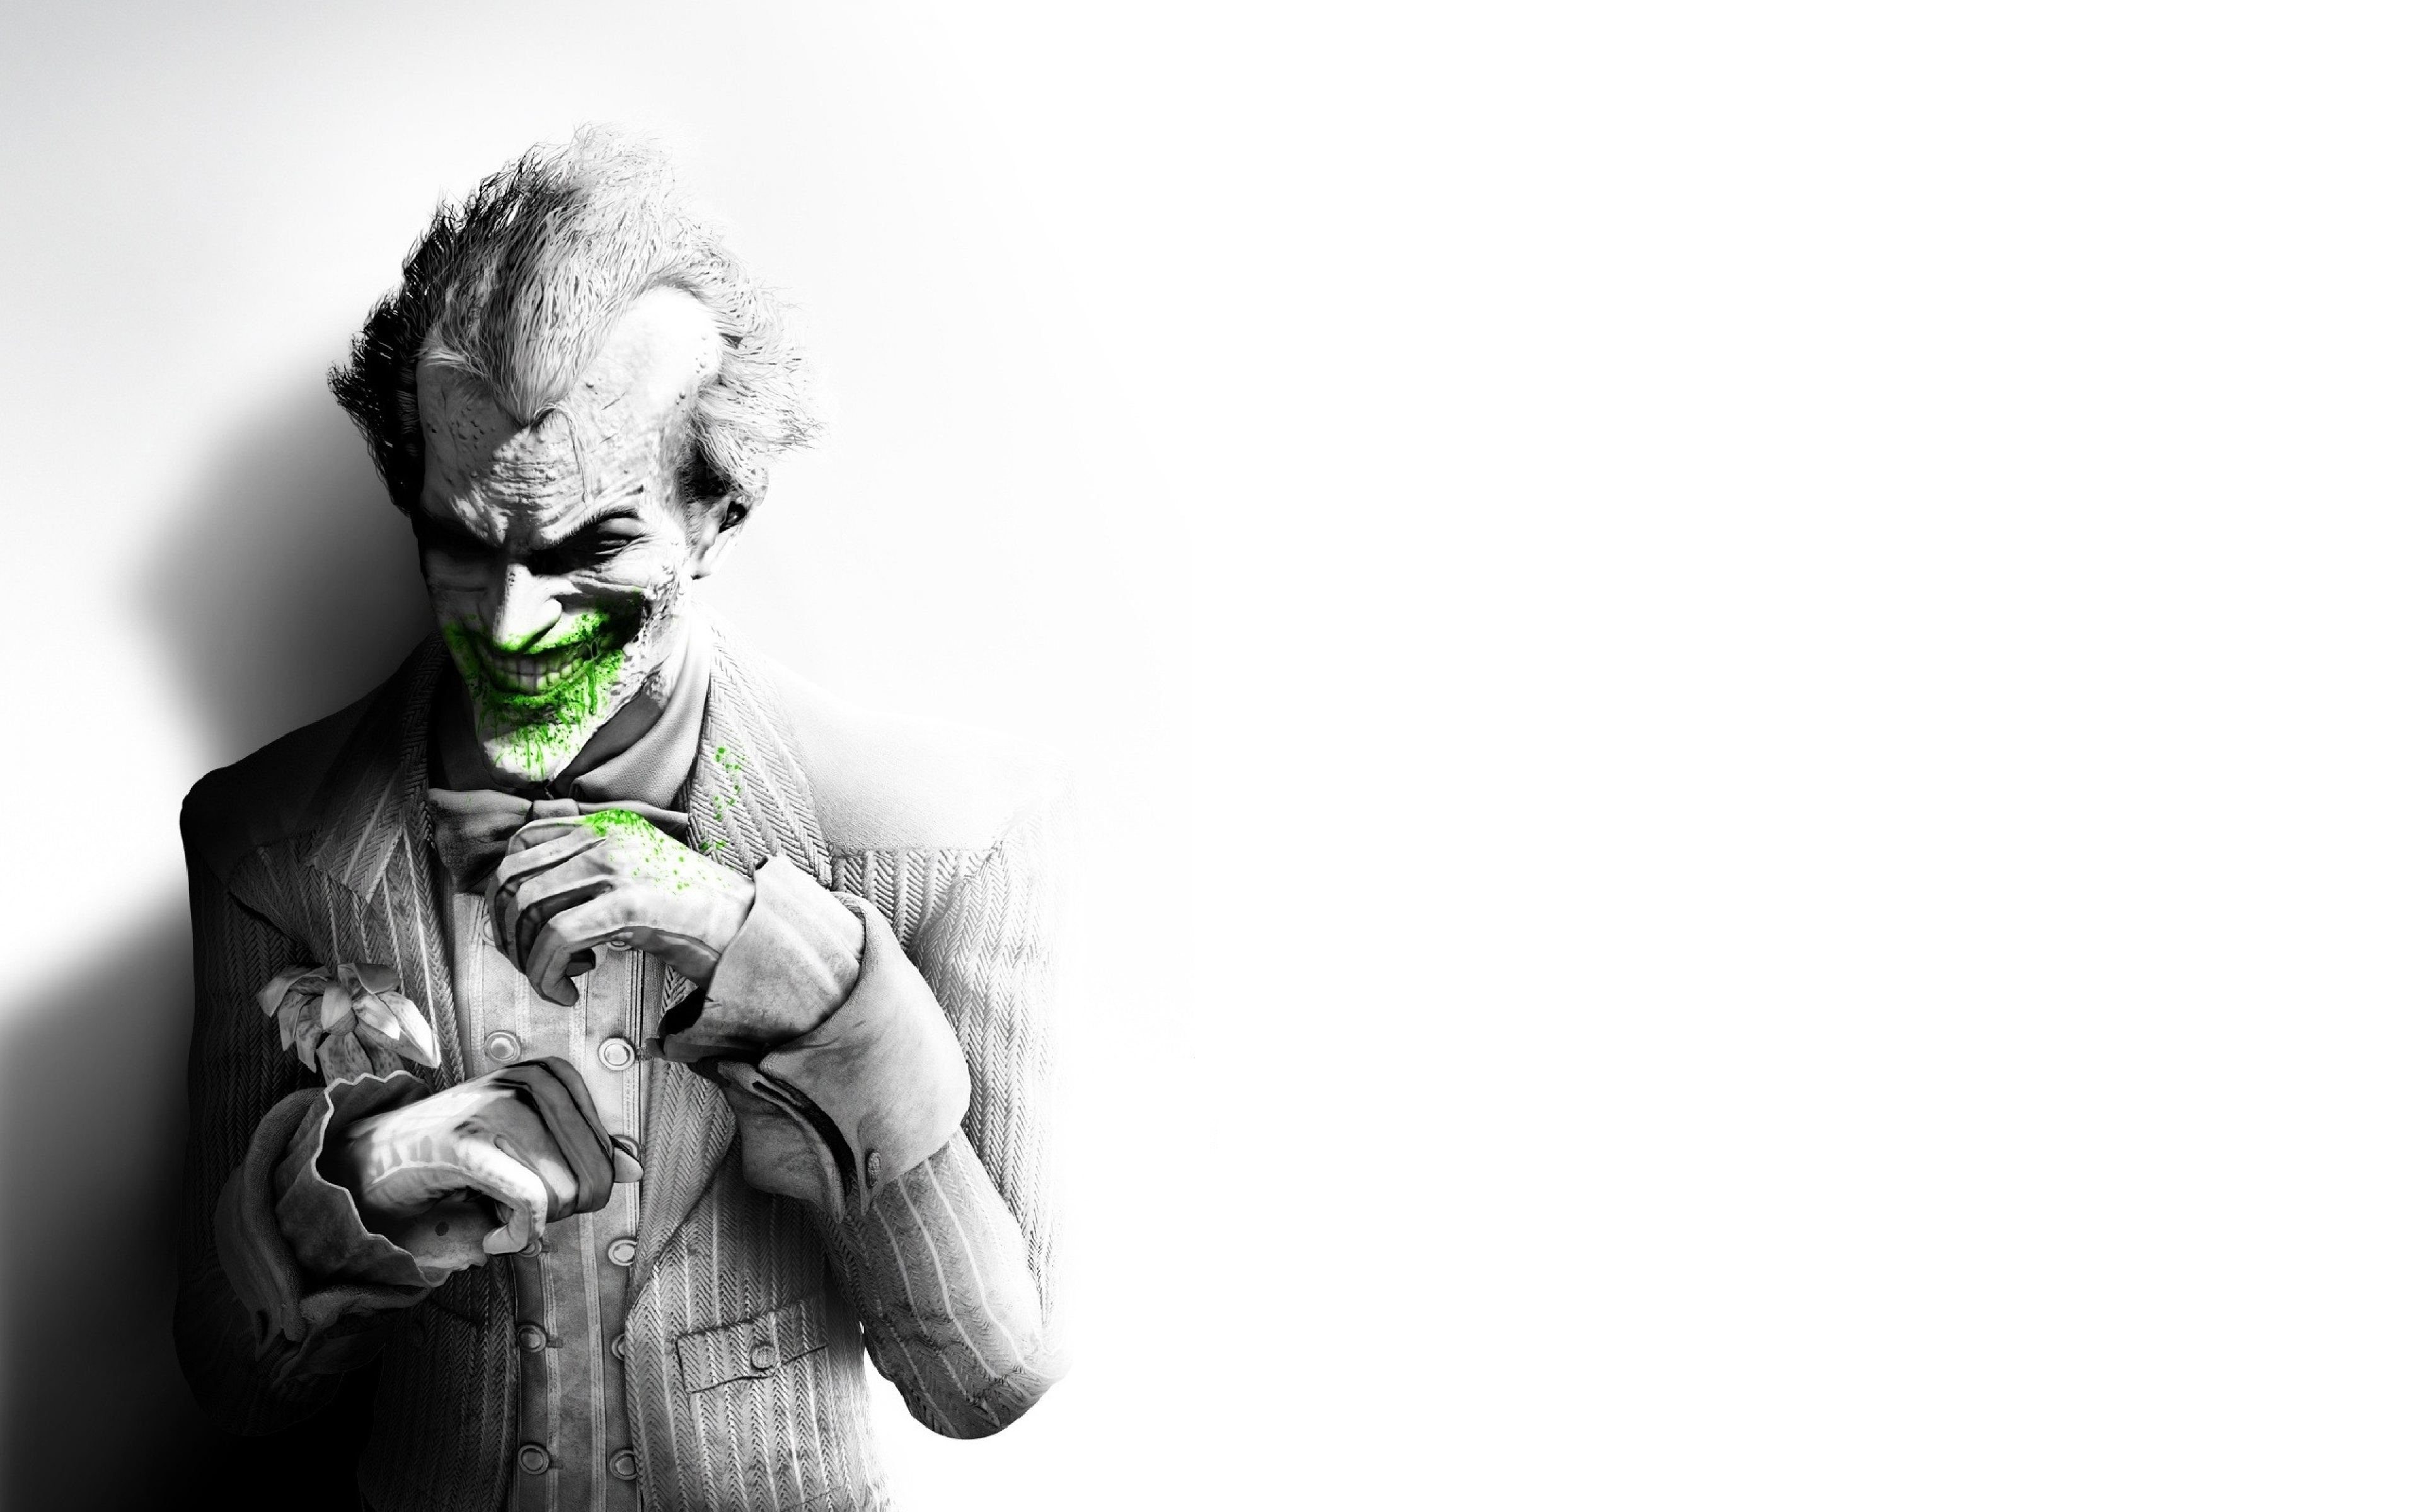 batman arkham city joker smile suit flower fan art black and white